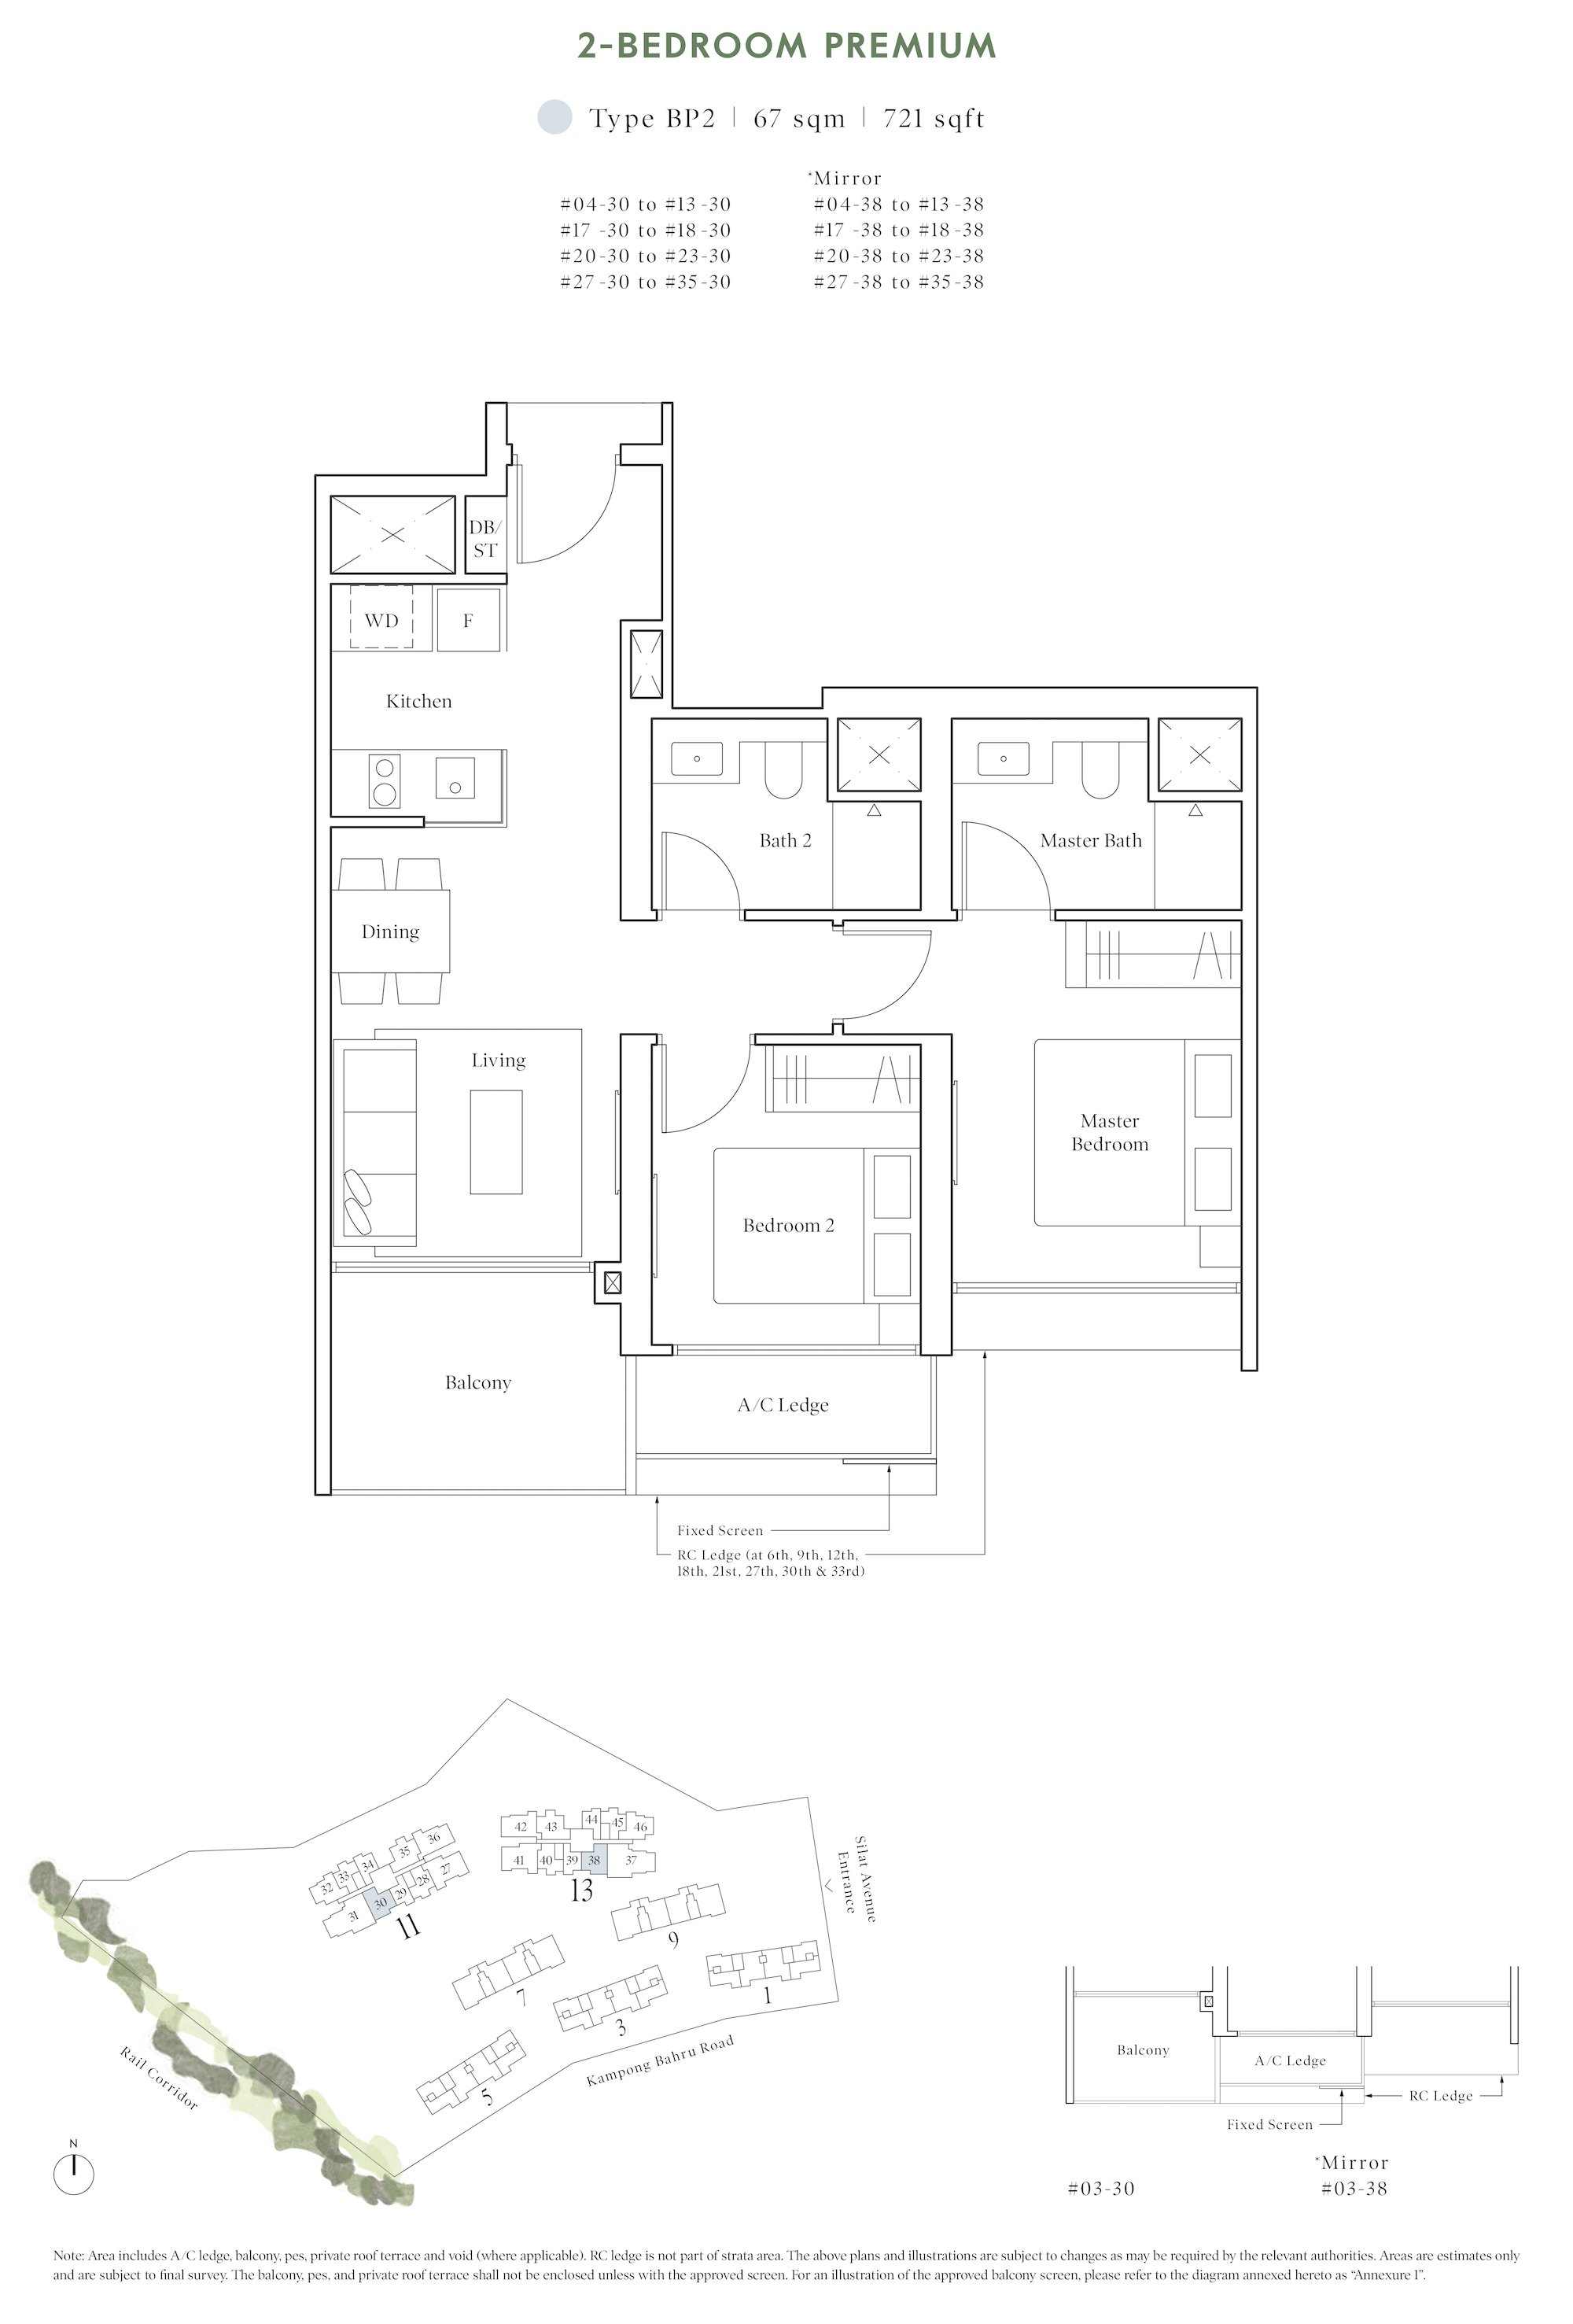 Avenue South Residence 南峰雅苑 horizon floor plan 2-bedroom bp2